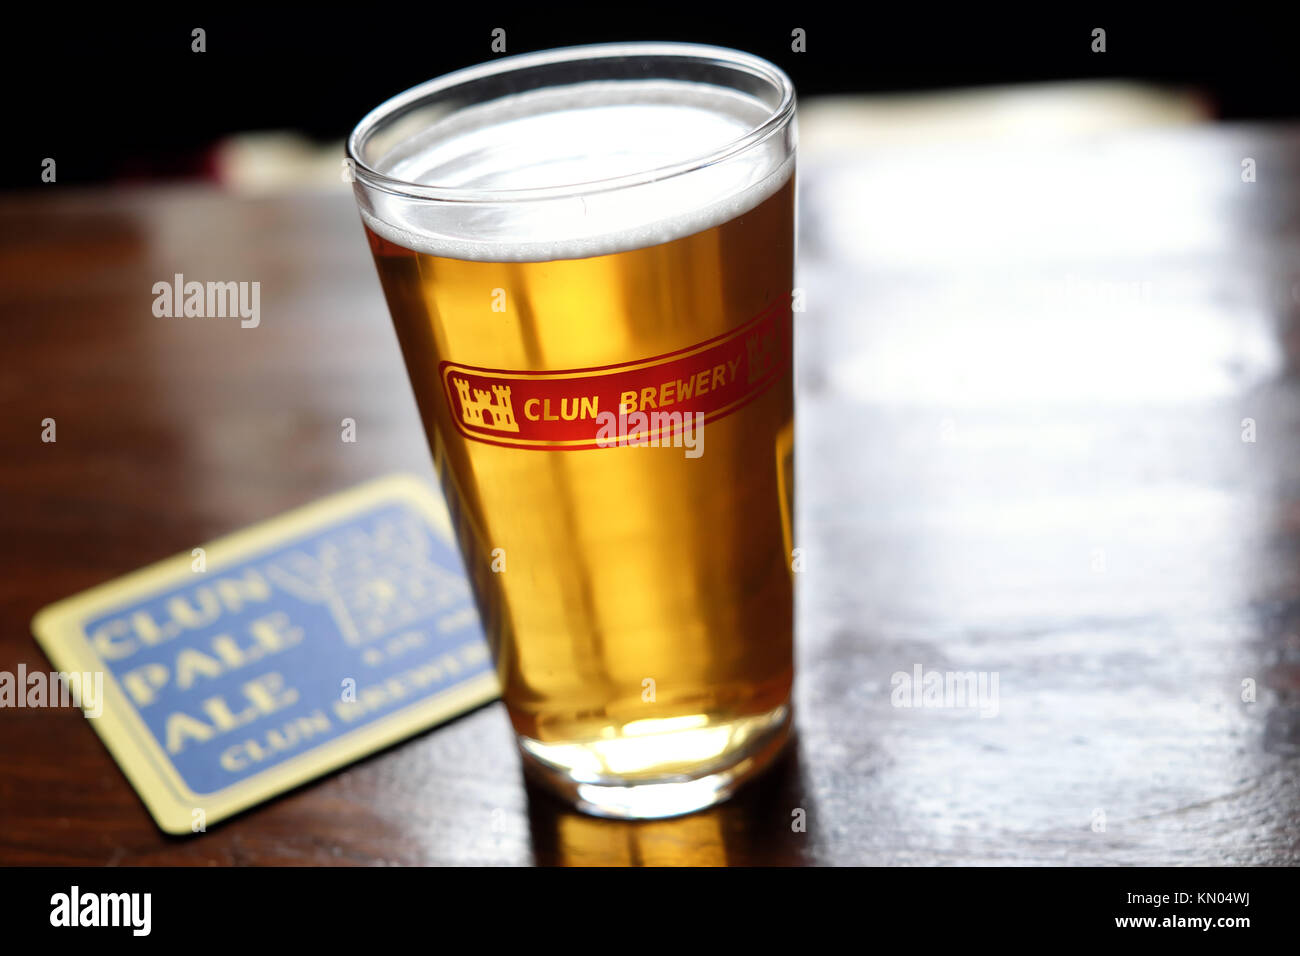 Clun Brewery produces local beer and ale in Clun, Shropshire, UK - Stock Image